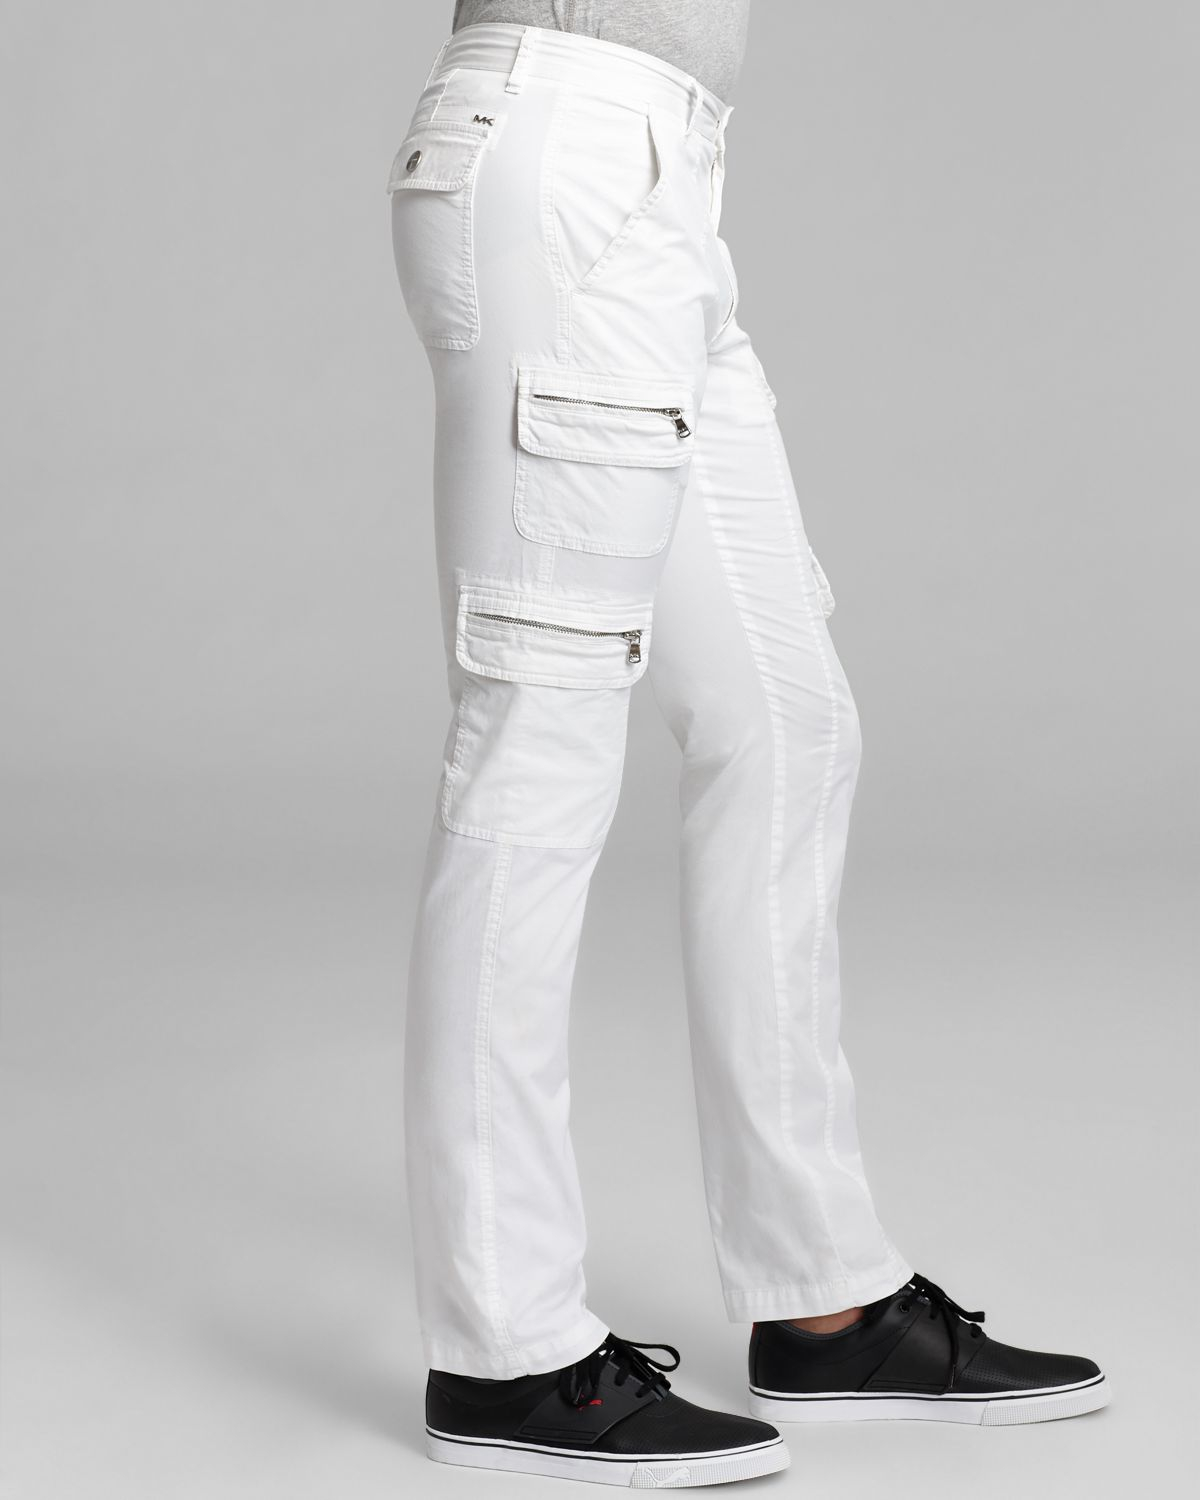 white cargo pants lyst michael kors twill cargo in white for 10233